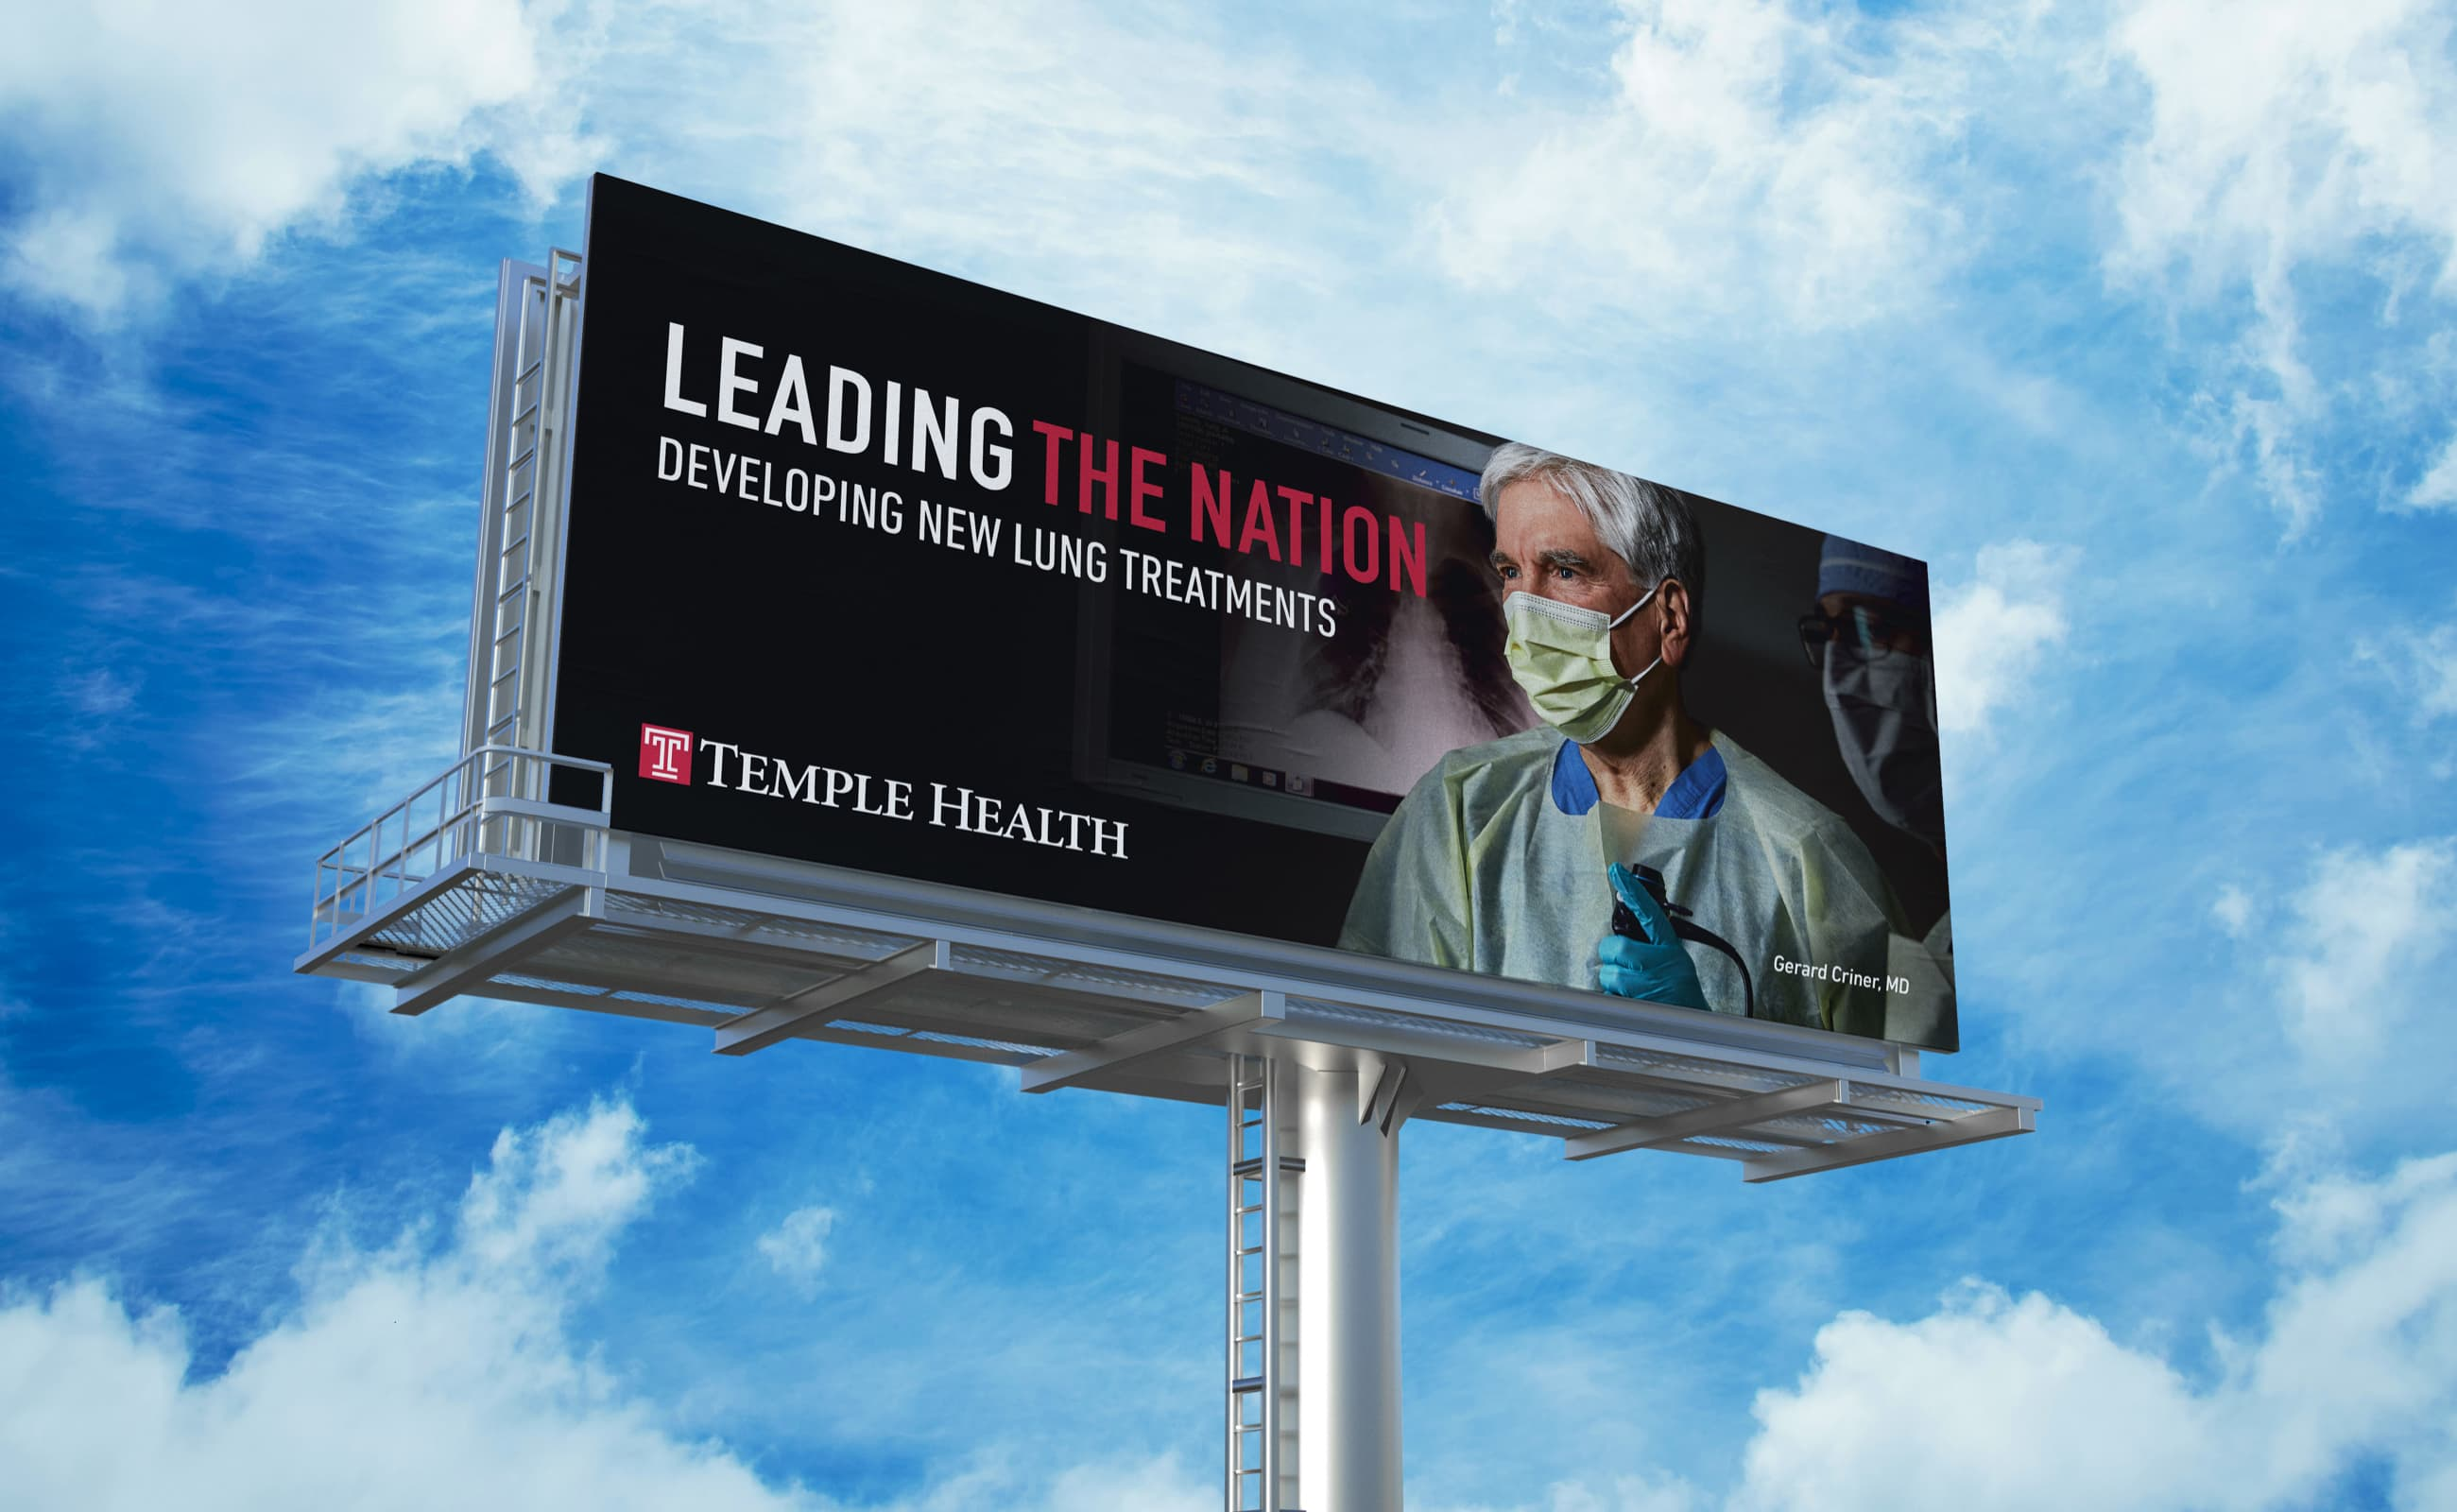 King Design Temple Health Opinion Leaders Campaign Gerard Criner MD